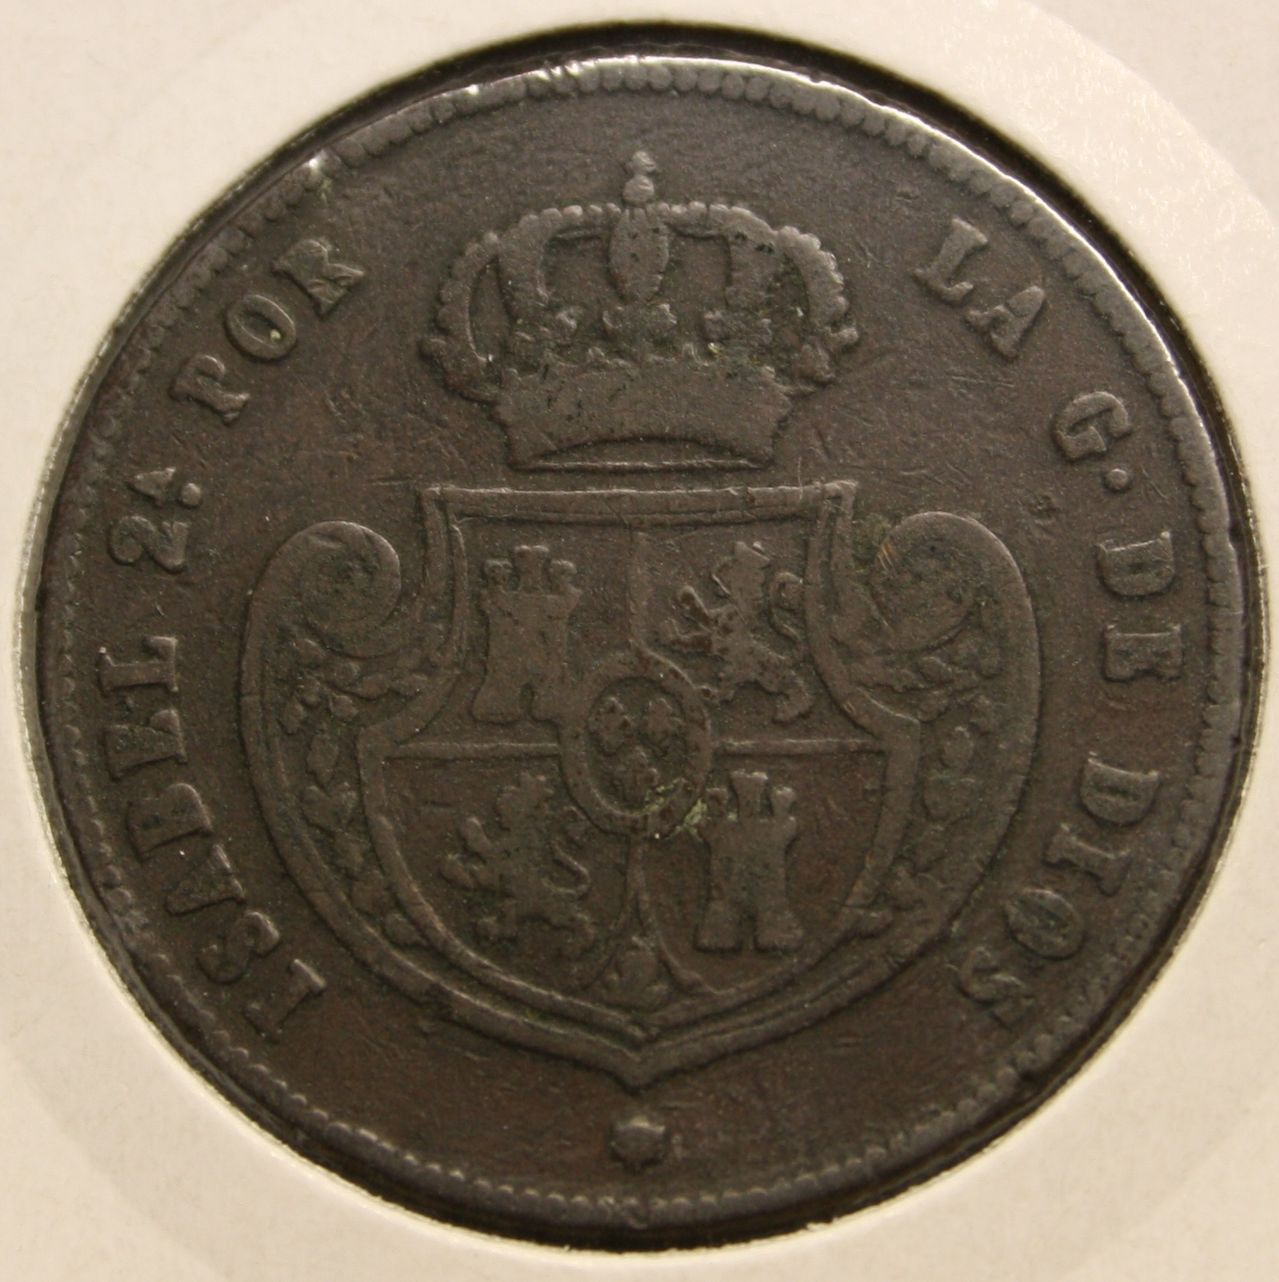 MEDIO REAL, CINCO DECIMAS 1848 ISABEL II - MADRID Isabel_ii_cobre_a